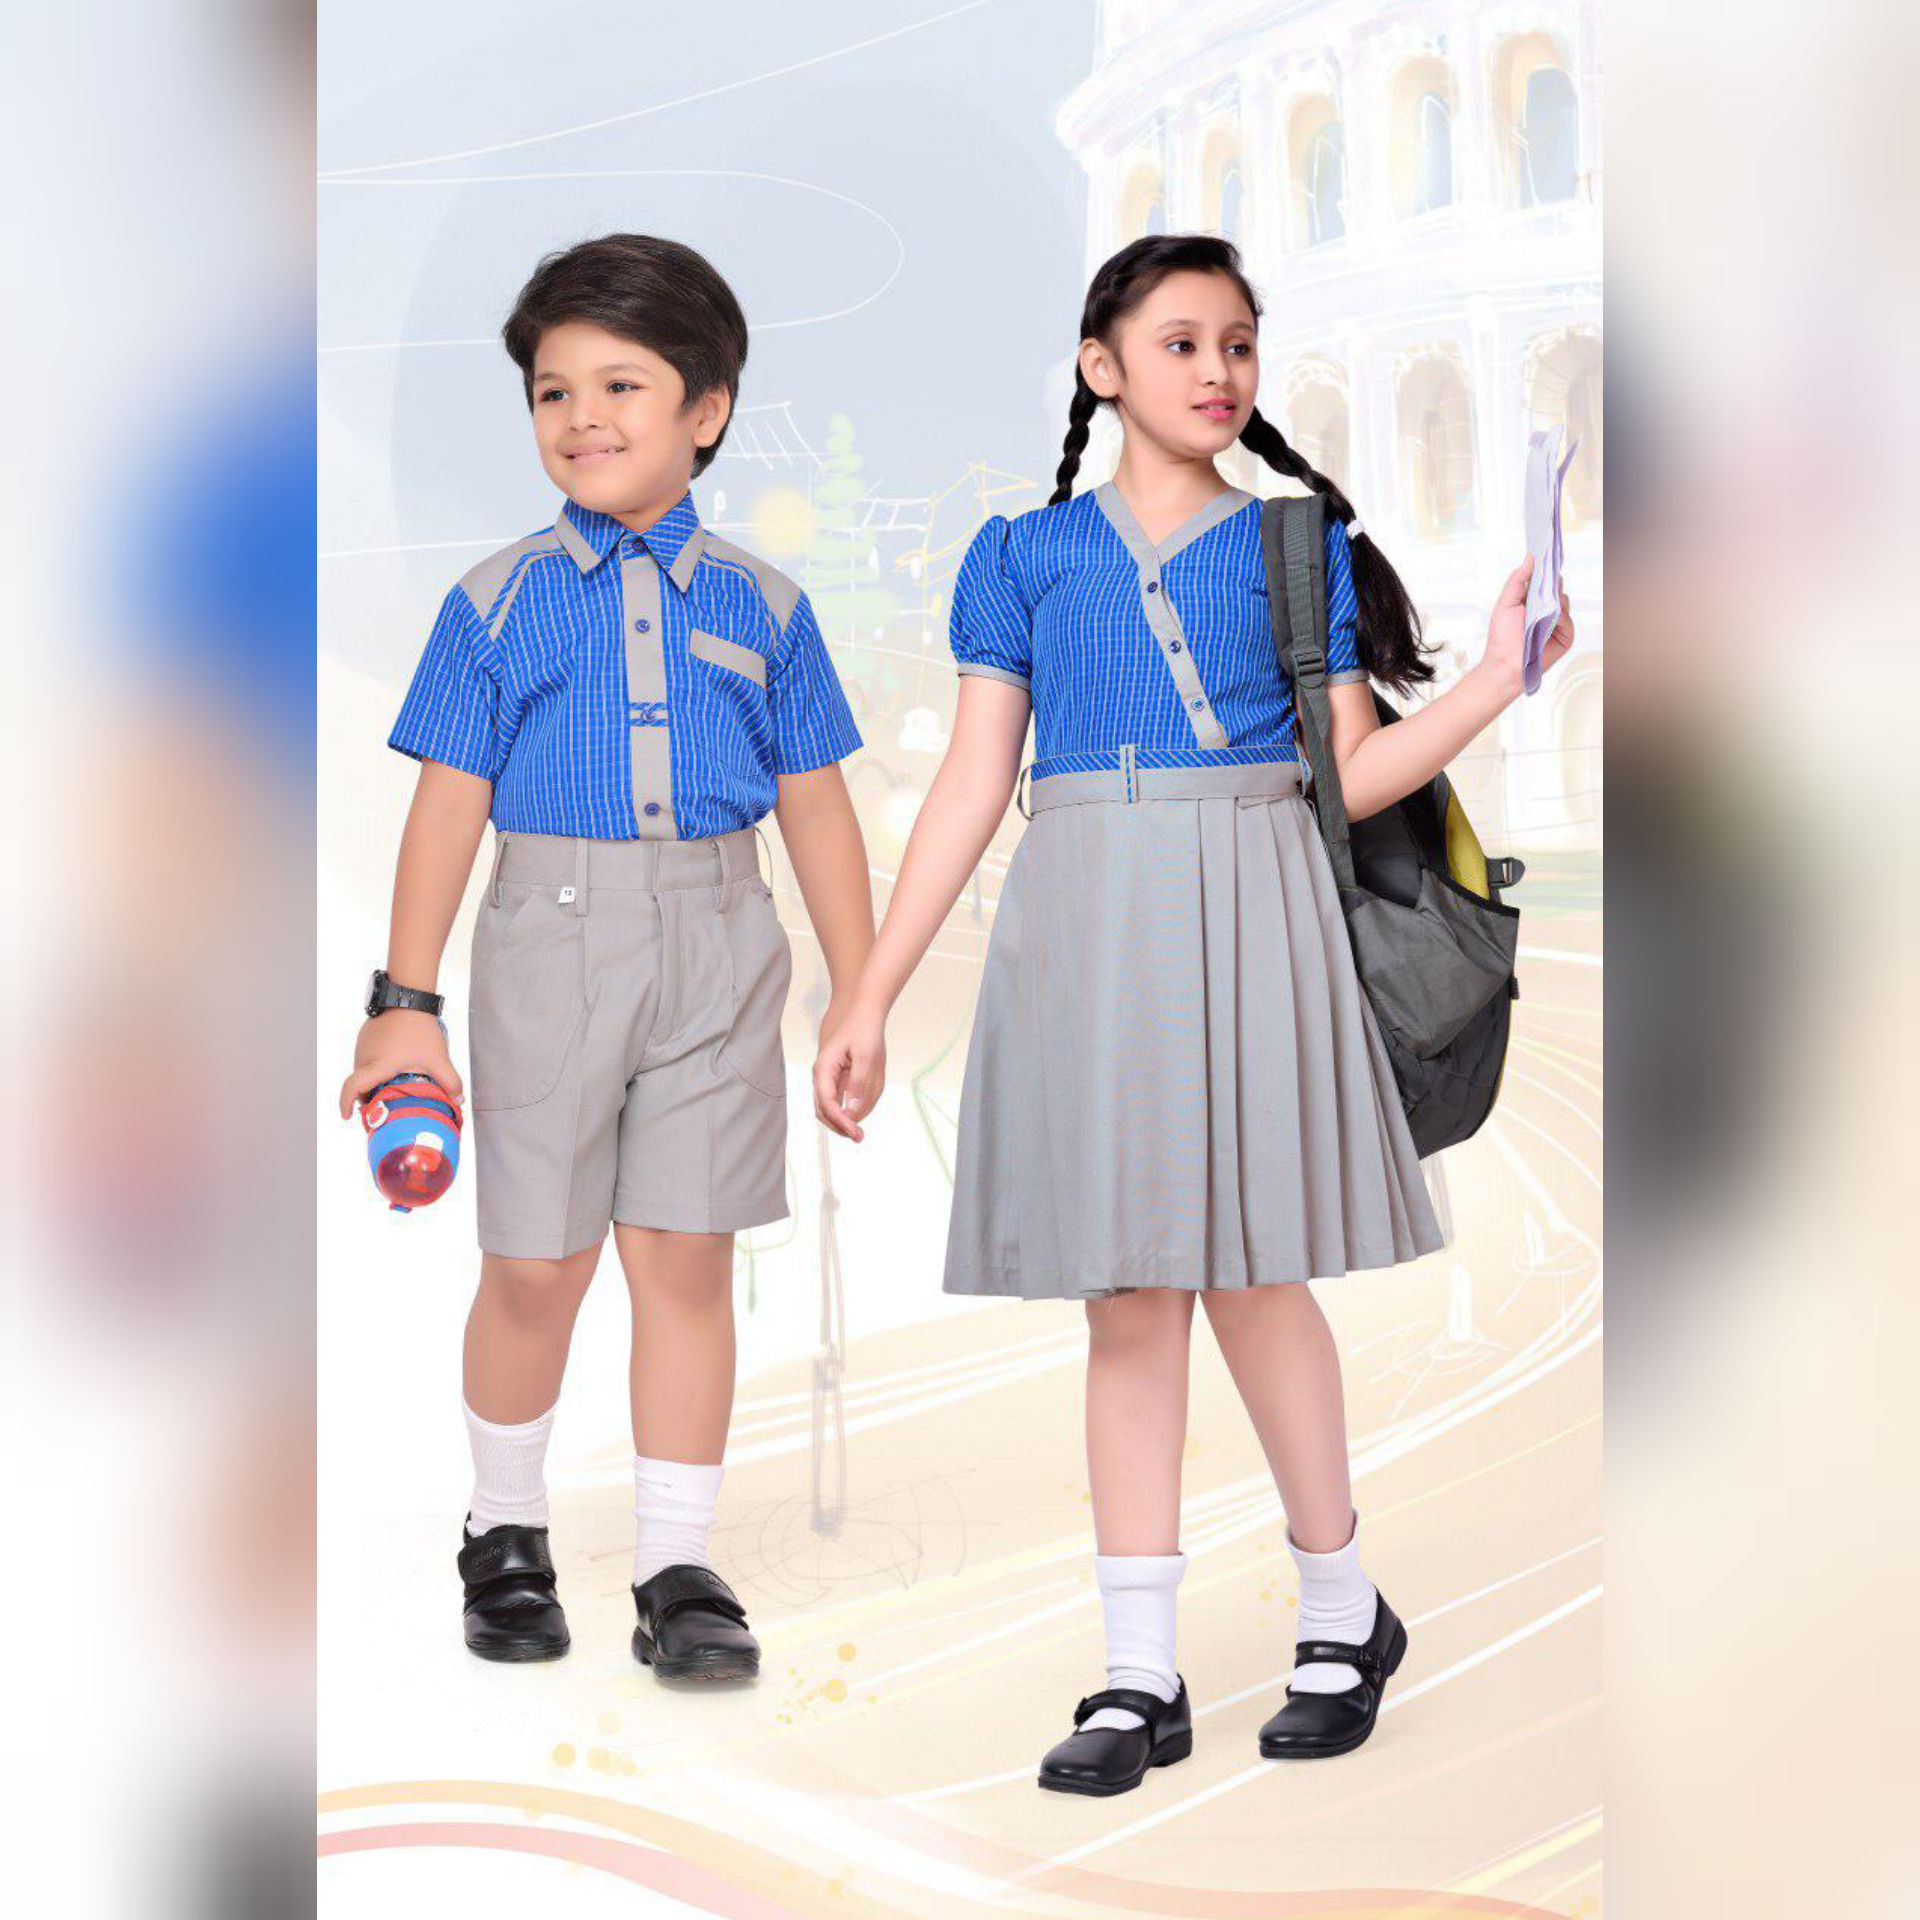 Designer Check school uniform for kindergarten kids